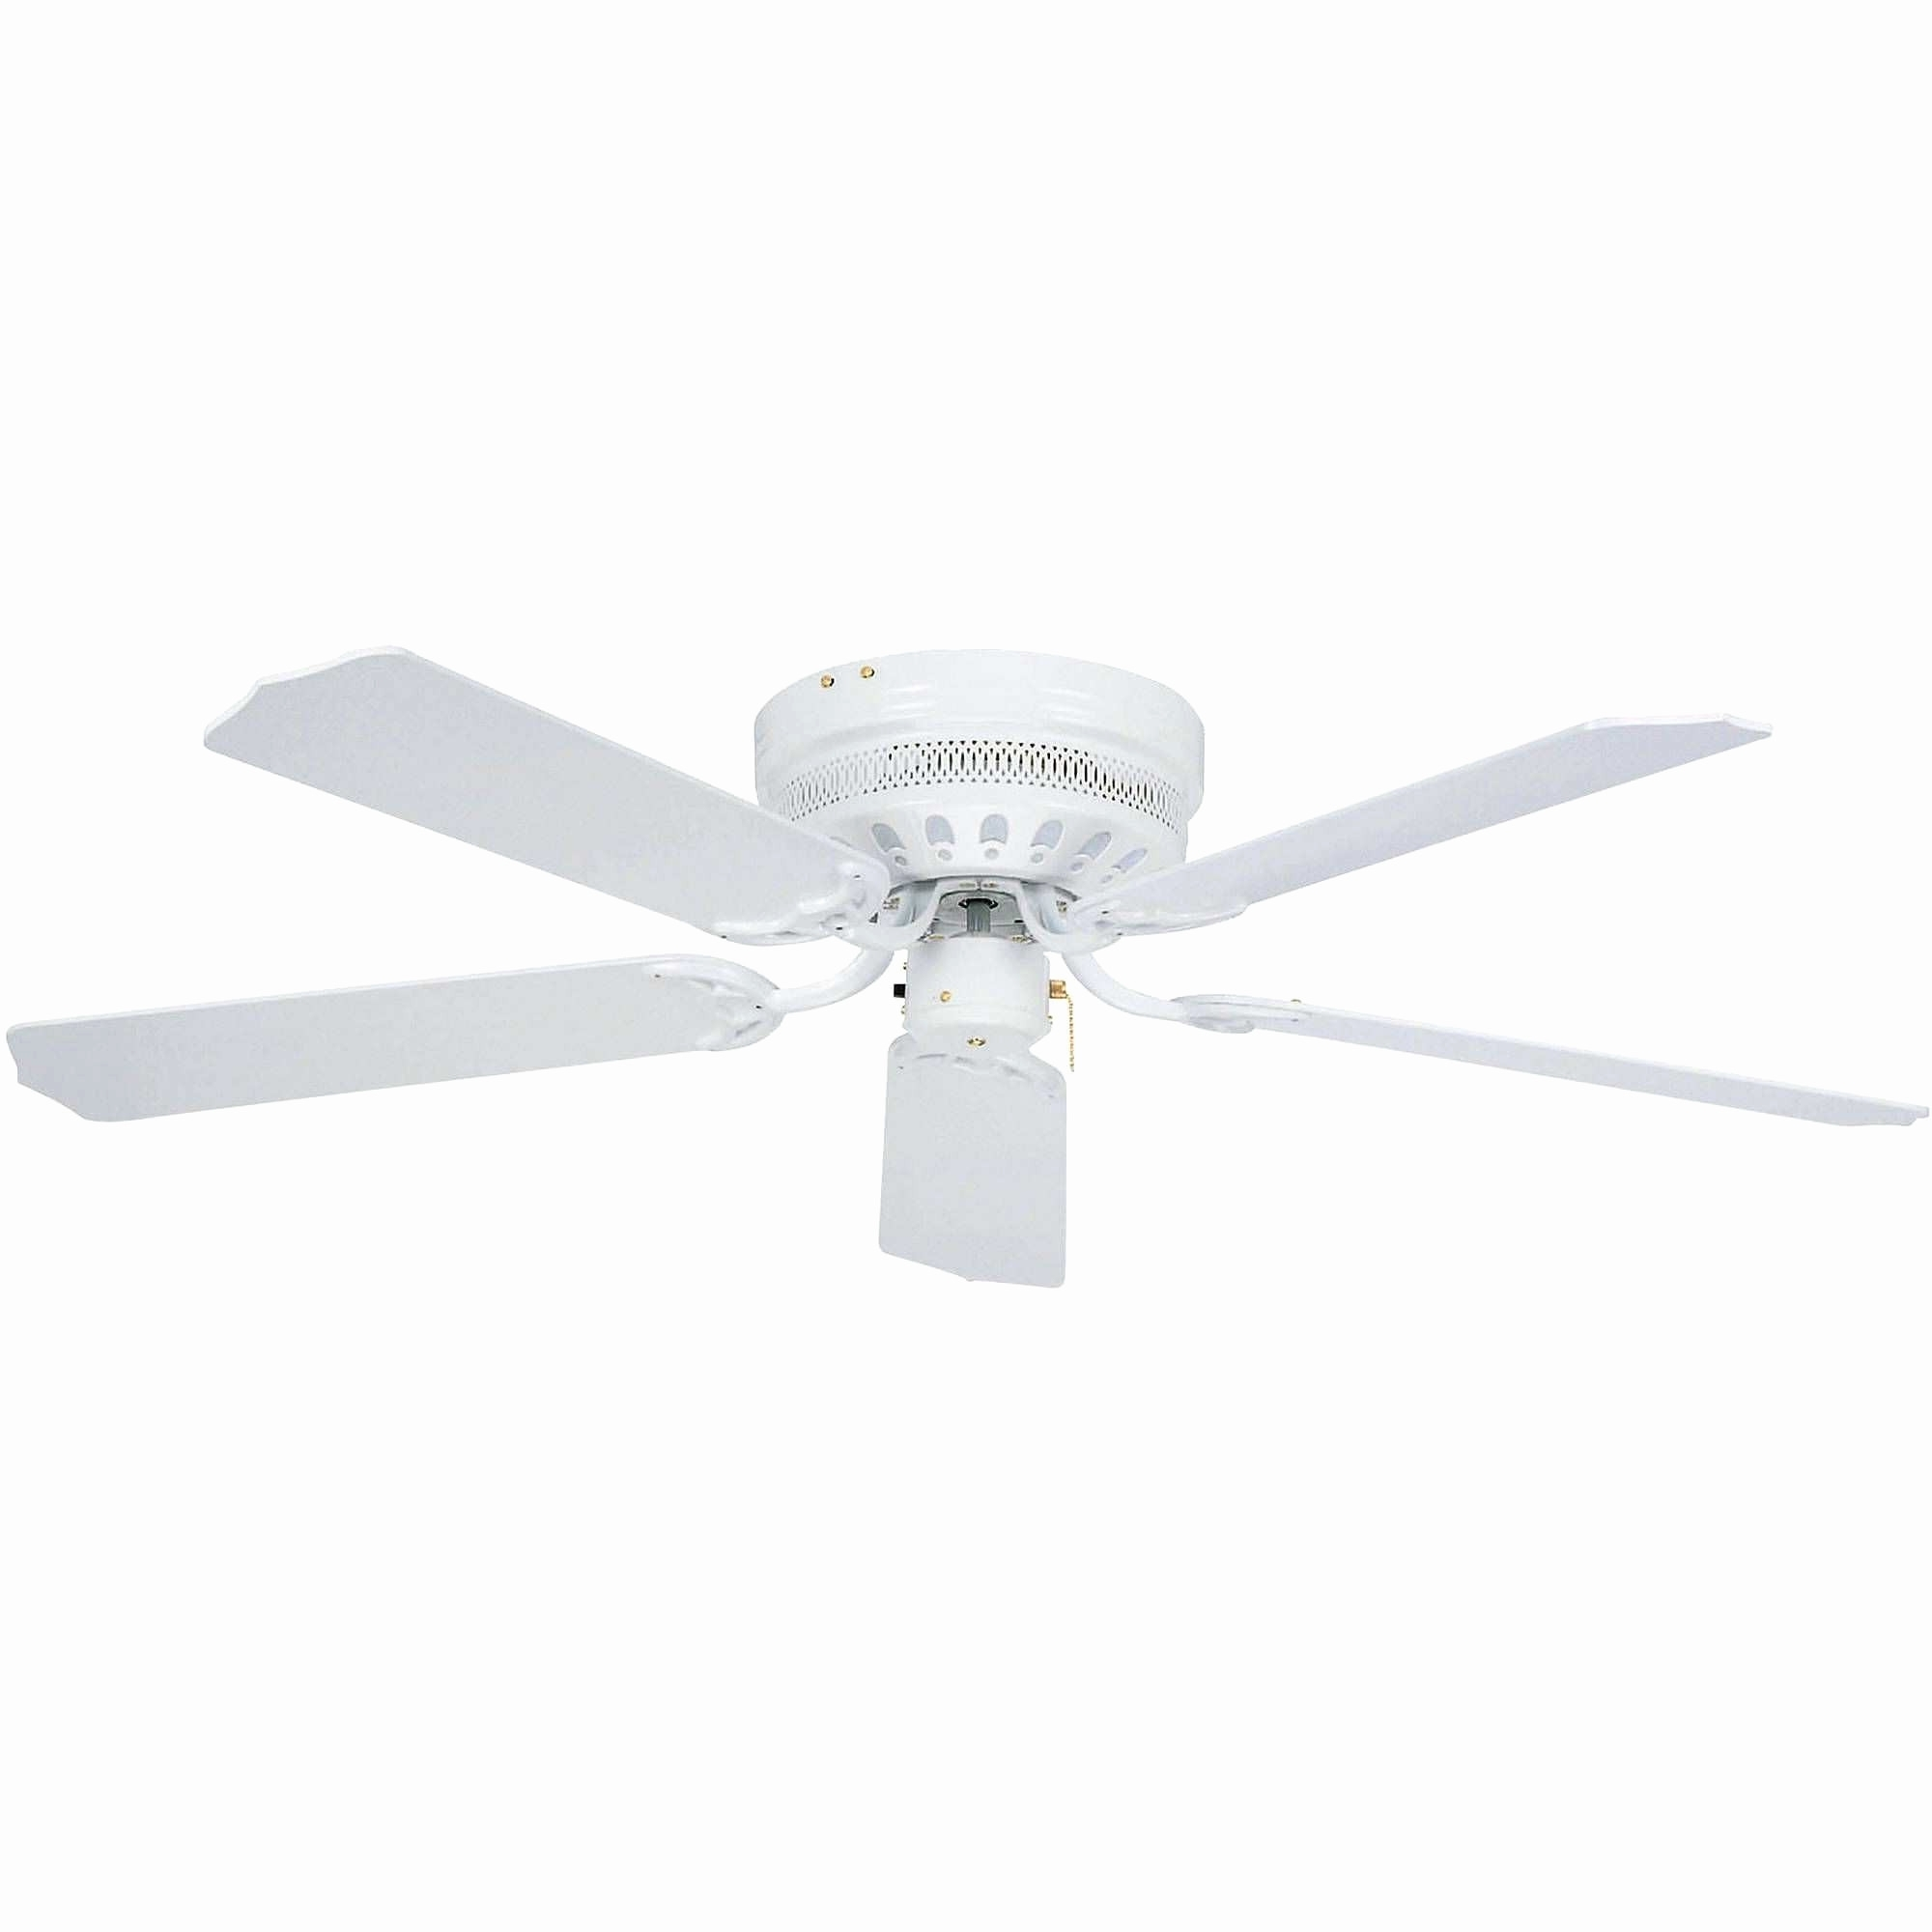 Outdoor Ceiling Fans At Walmart Inside Most Recently Released White Outdoor Ceiling Fan With Light Luxury Outdoor Ceiling Fans (View 20 of 20)